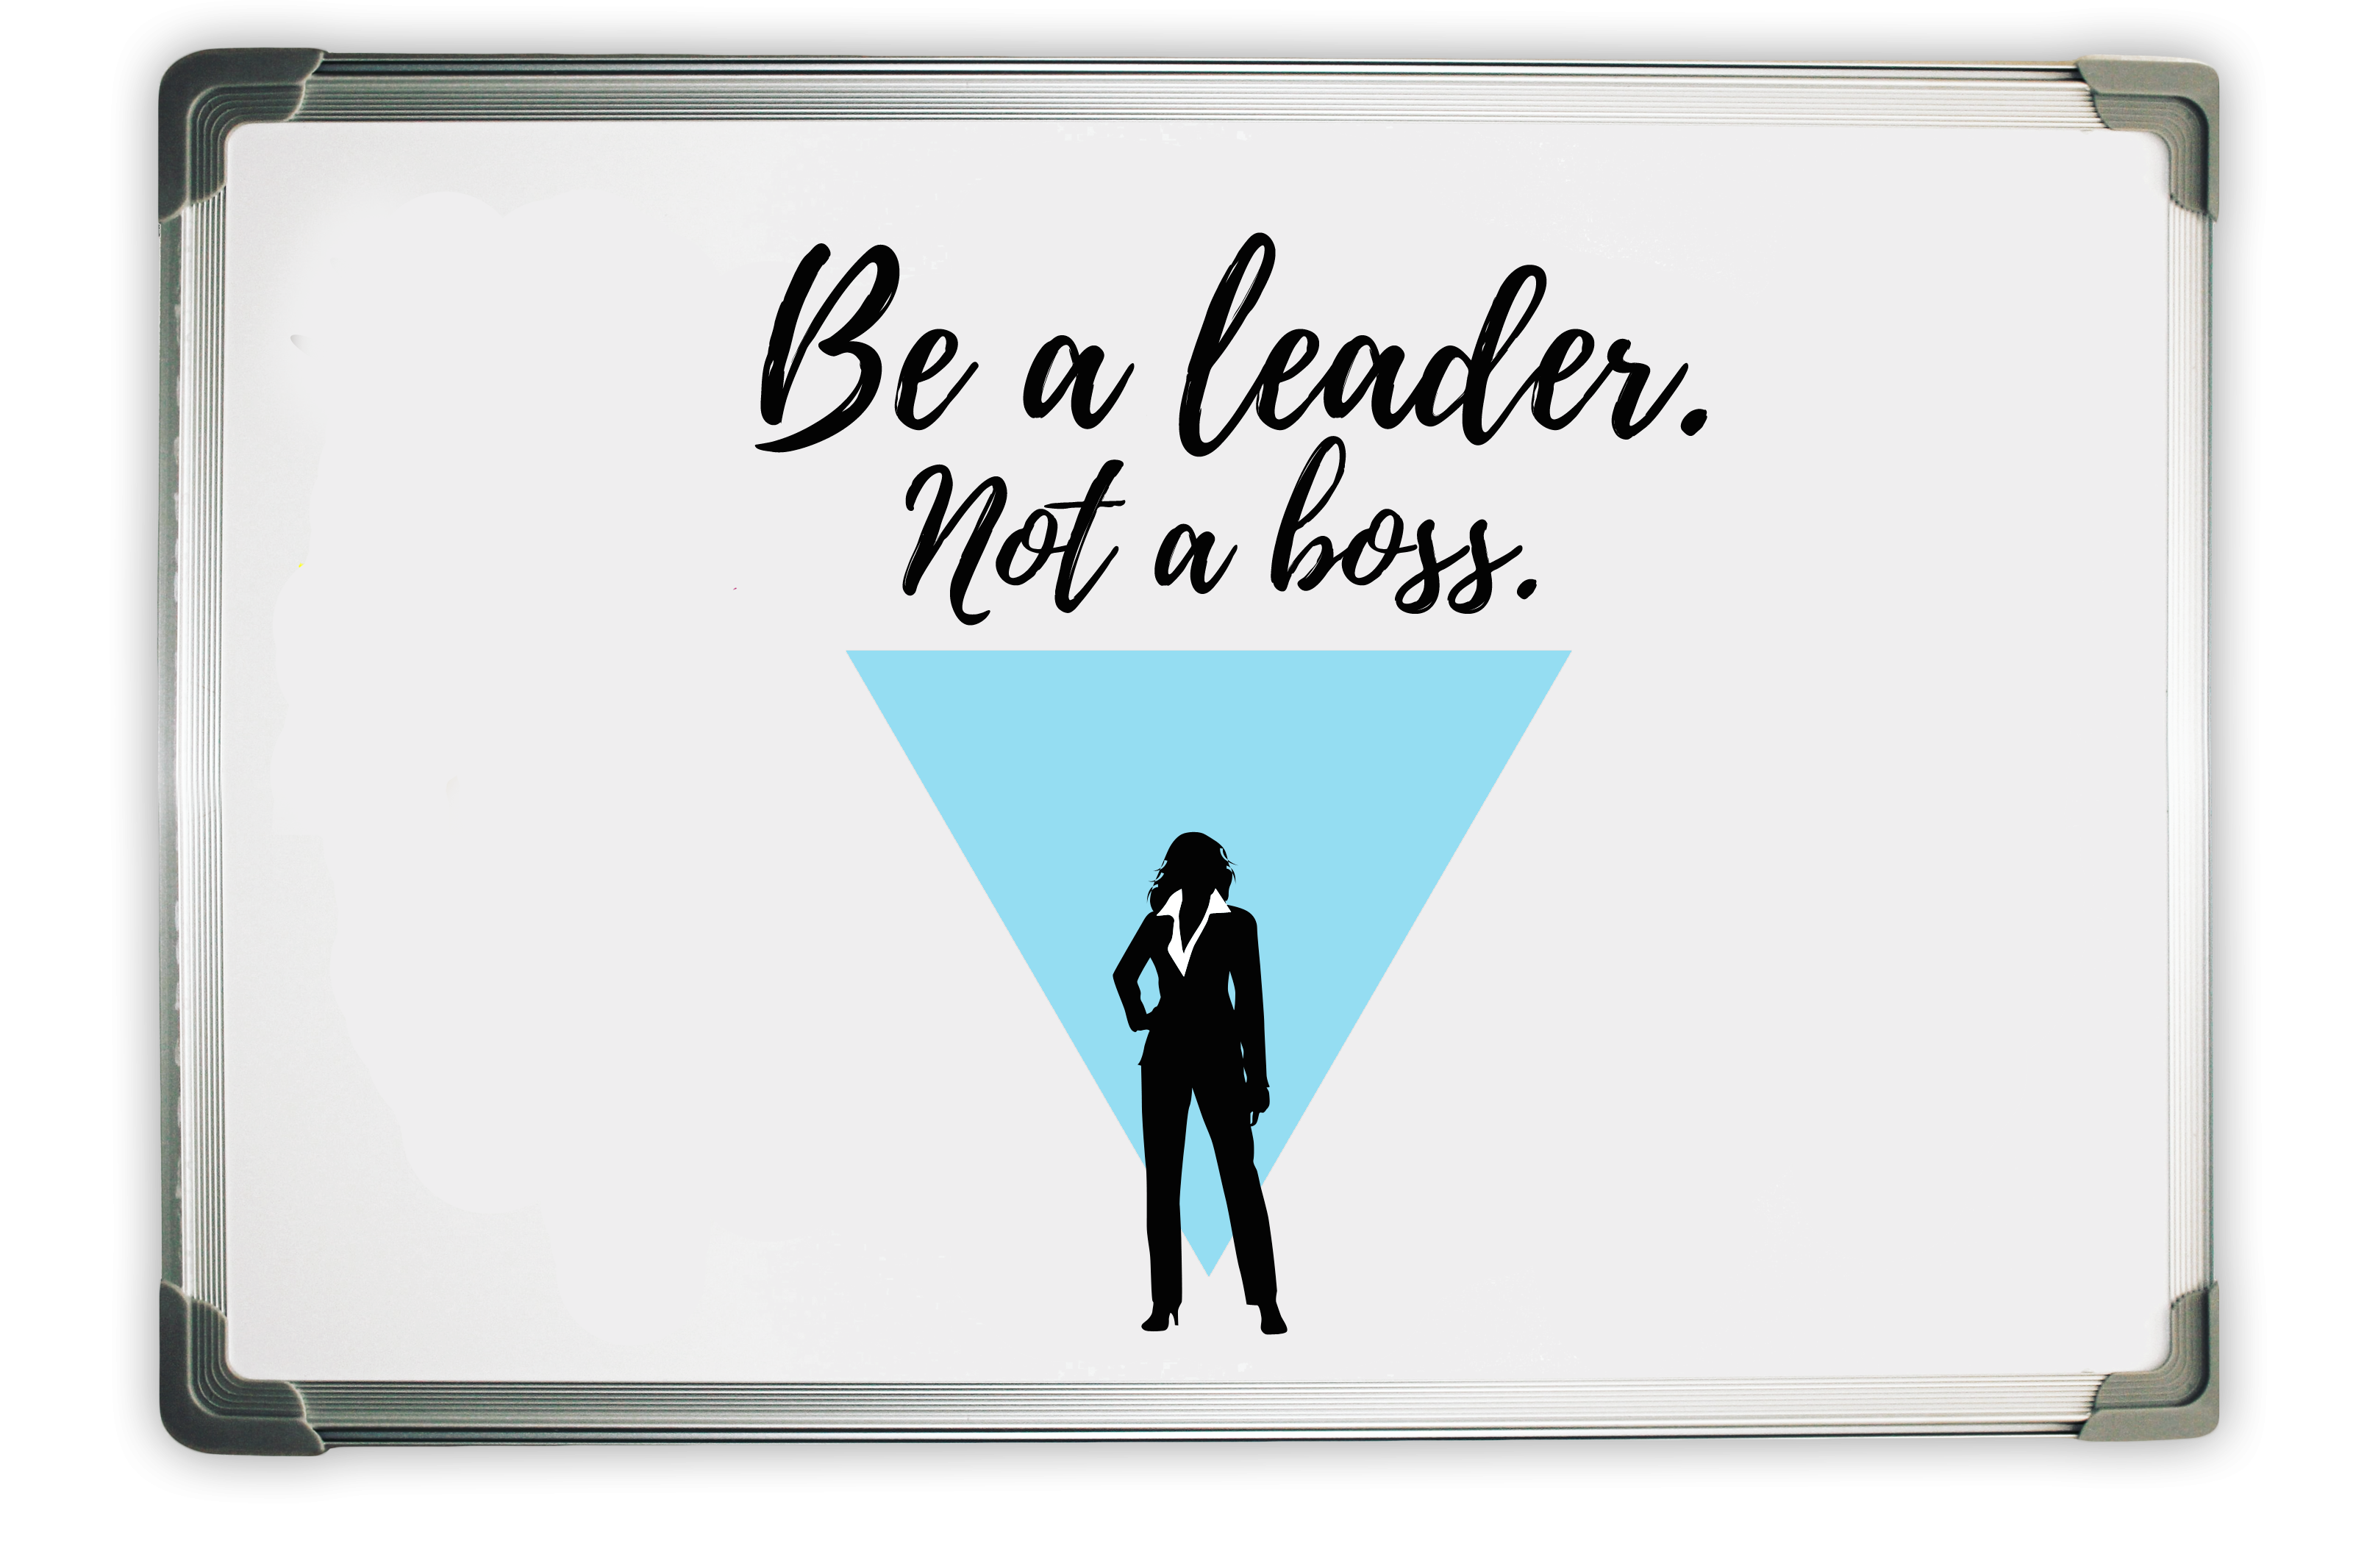 Be a leader jd agency